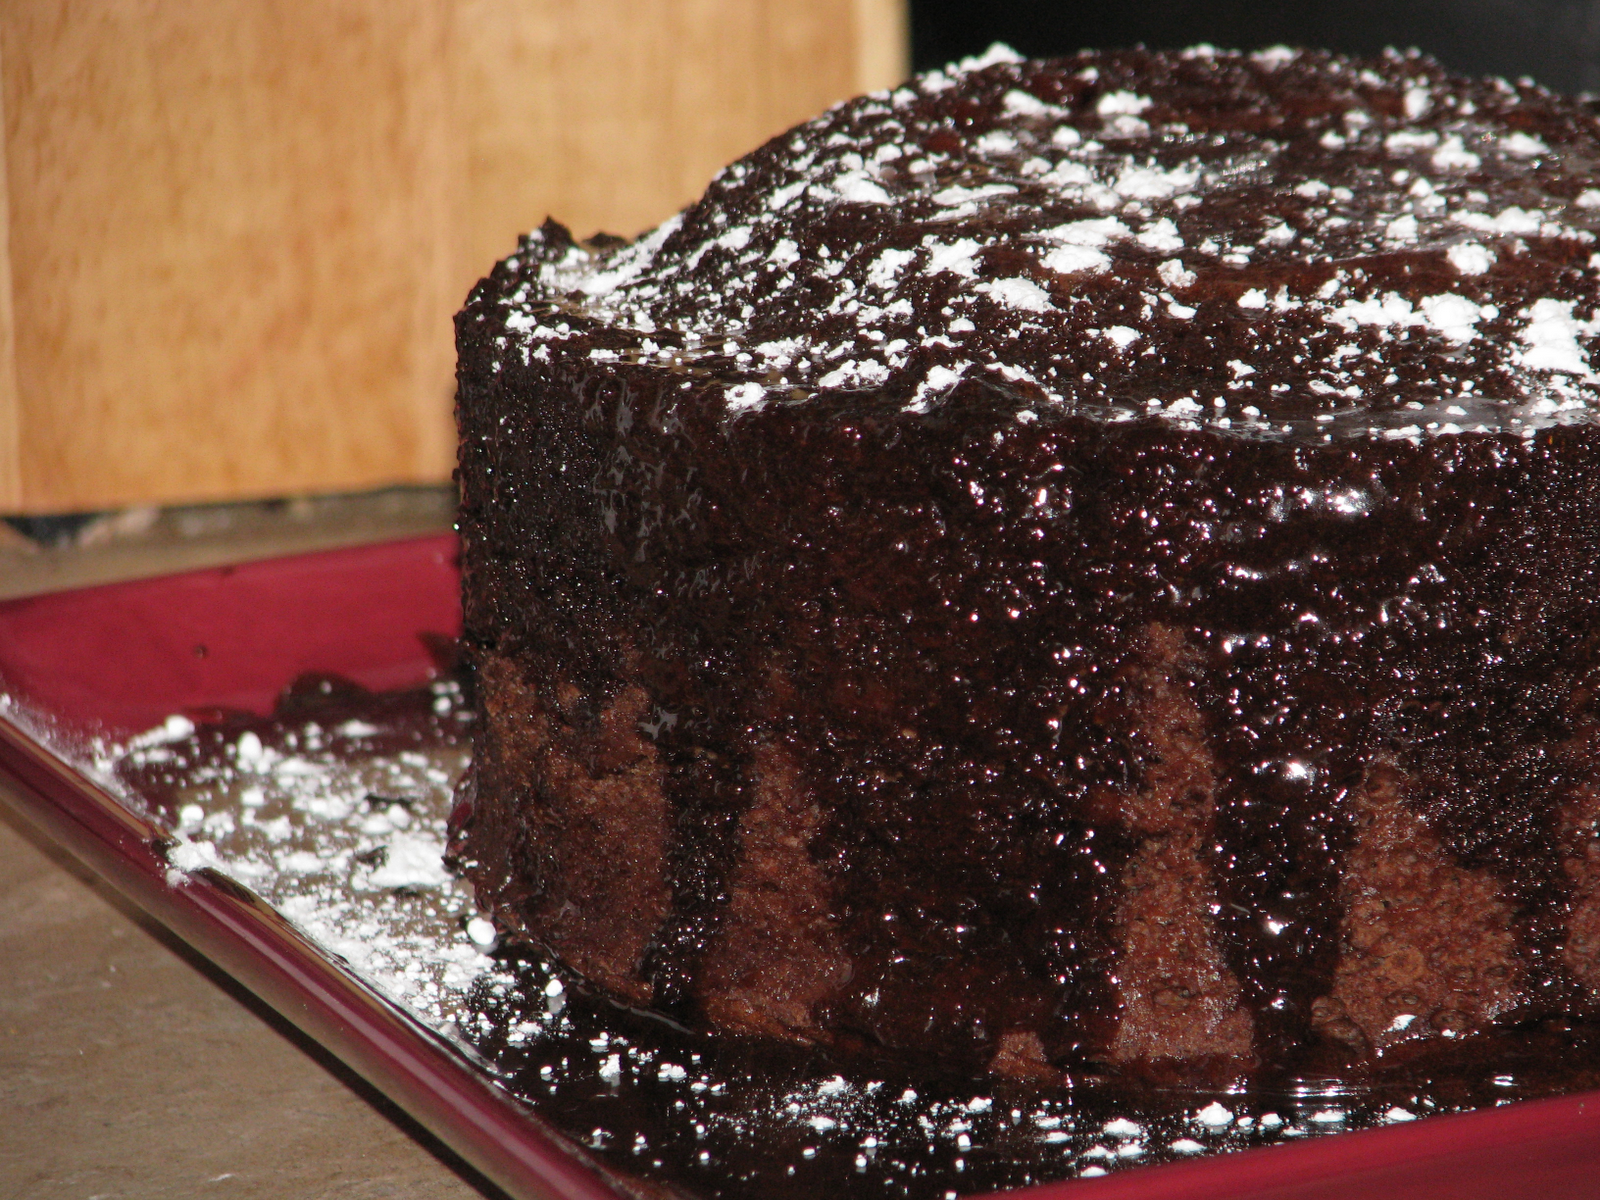 Lava Cake Recipe In Rice Cooker: Pampered Chef Molten Lava Cake In Oven